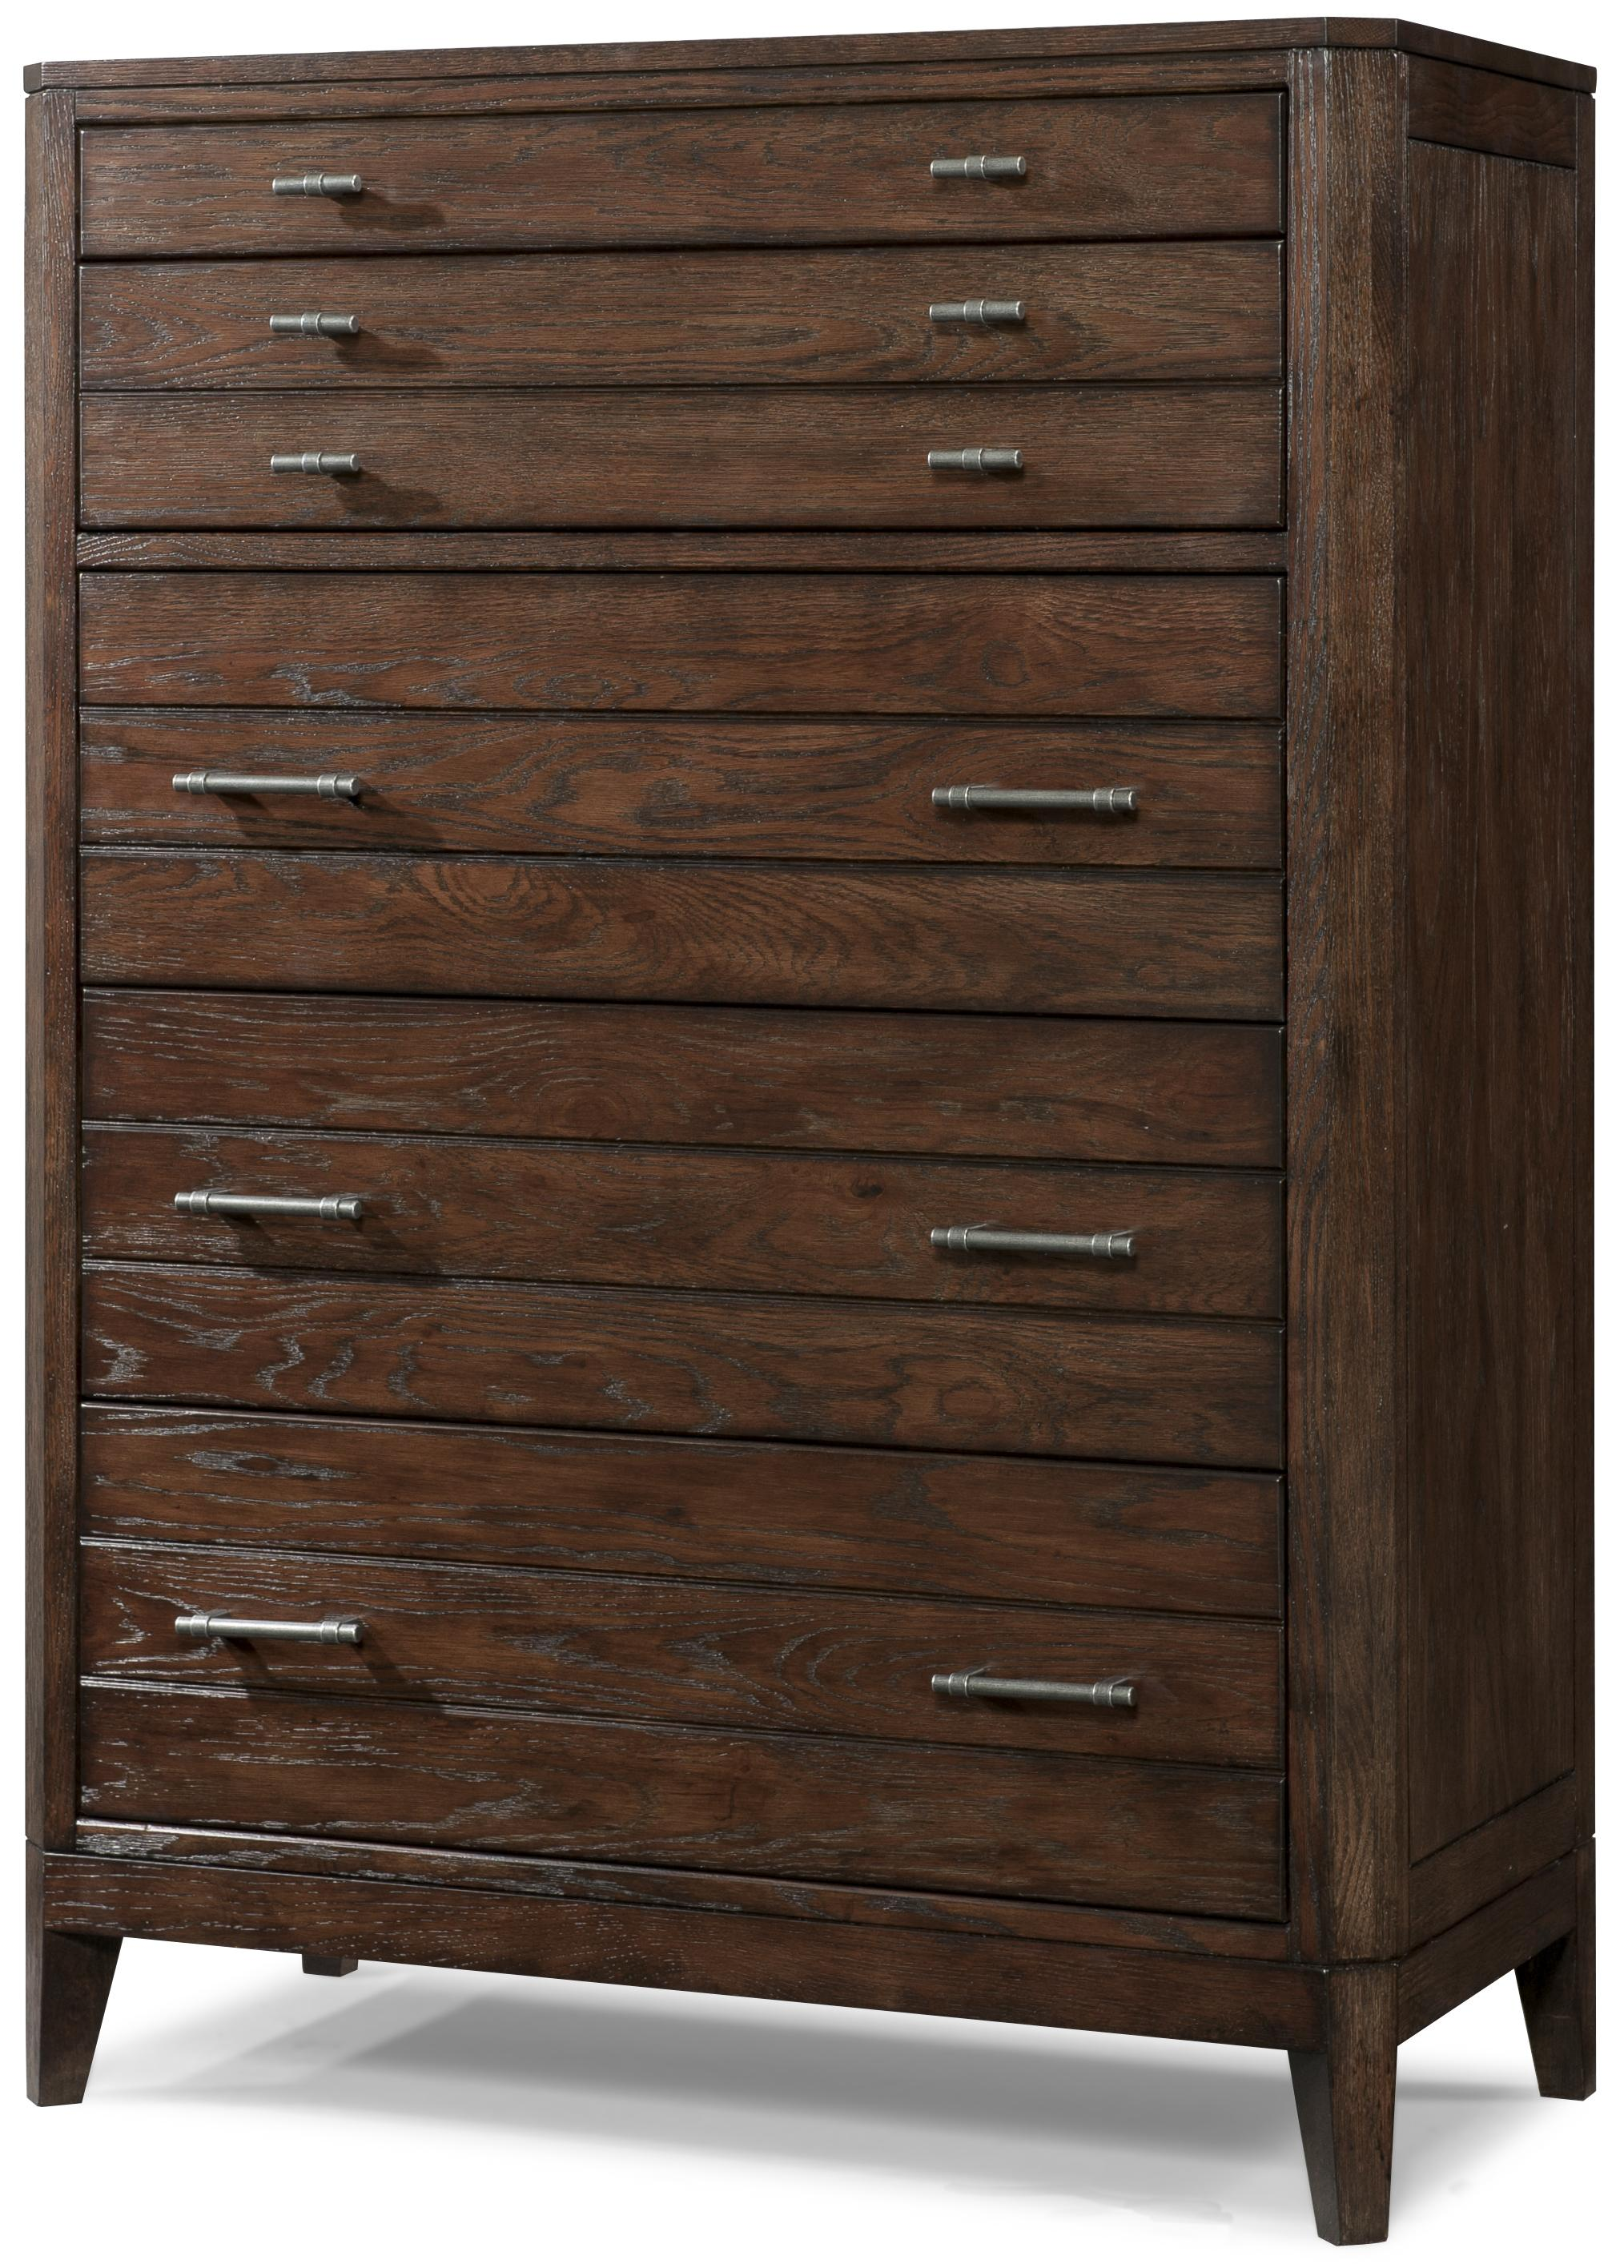 Cresent Fine Furniture Hampton Tall Chest of Drawers with